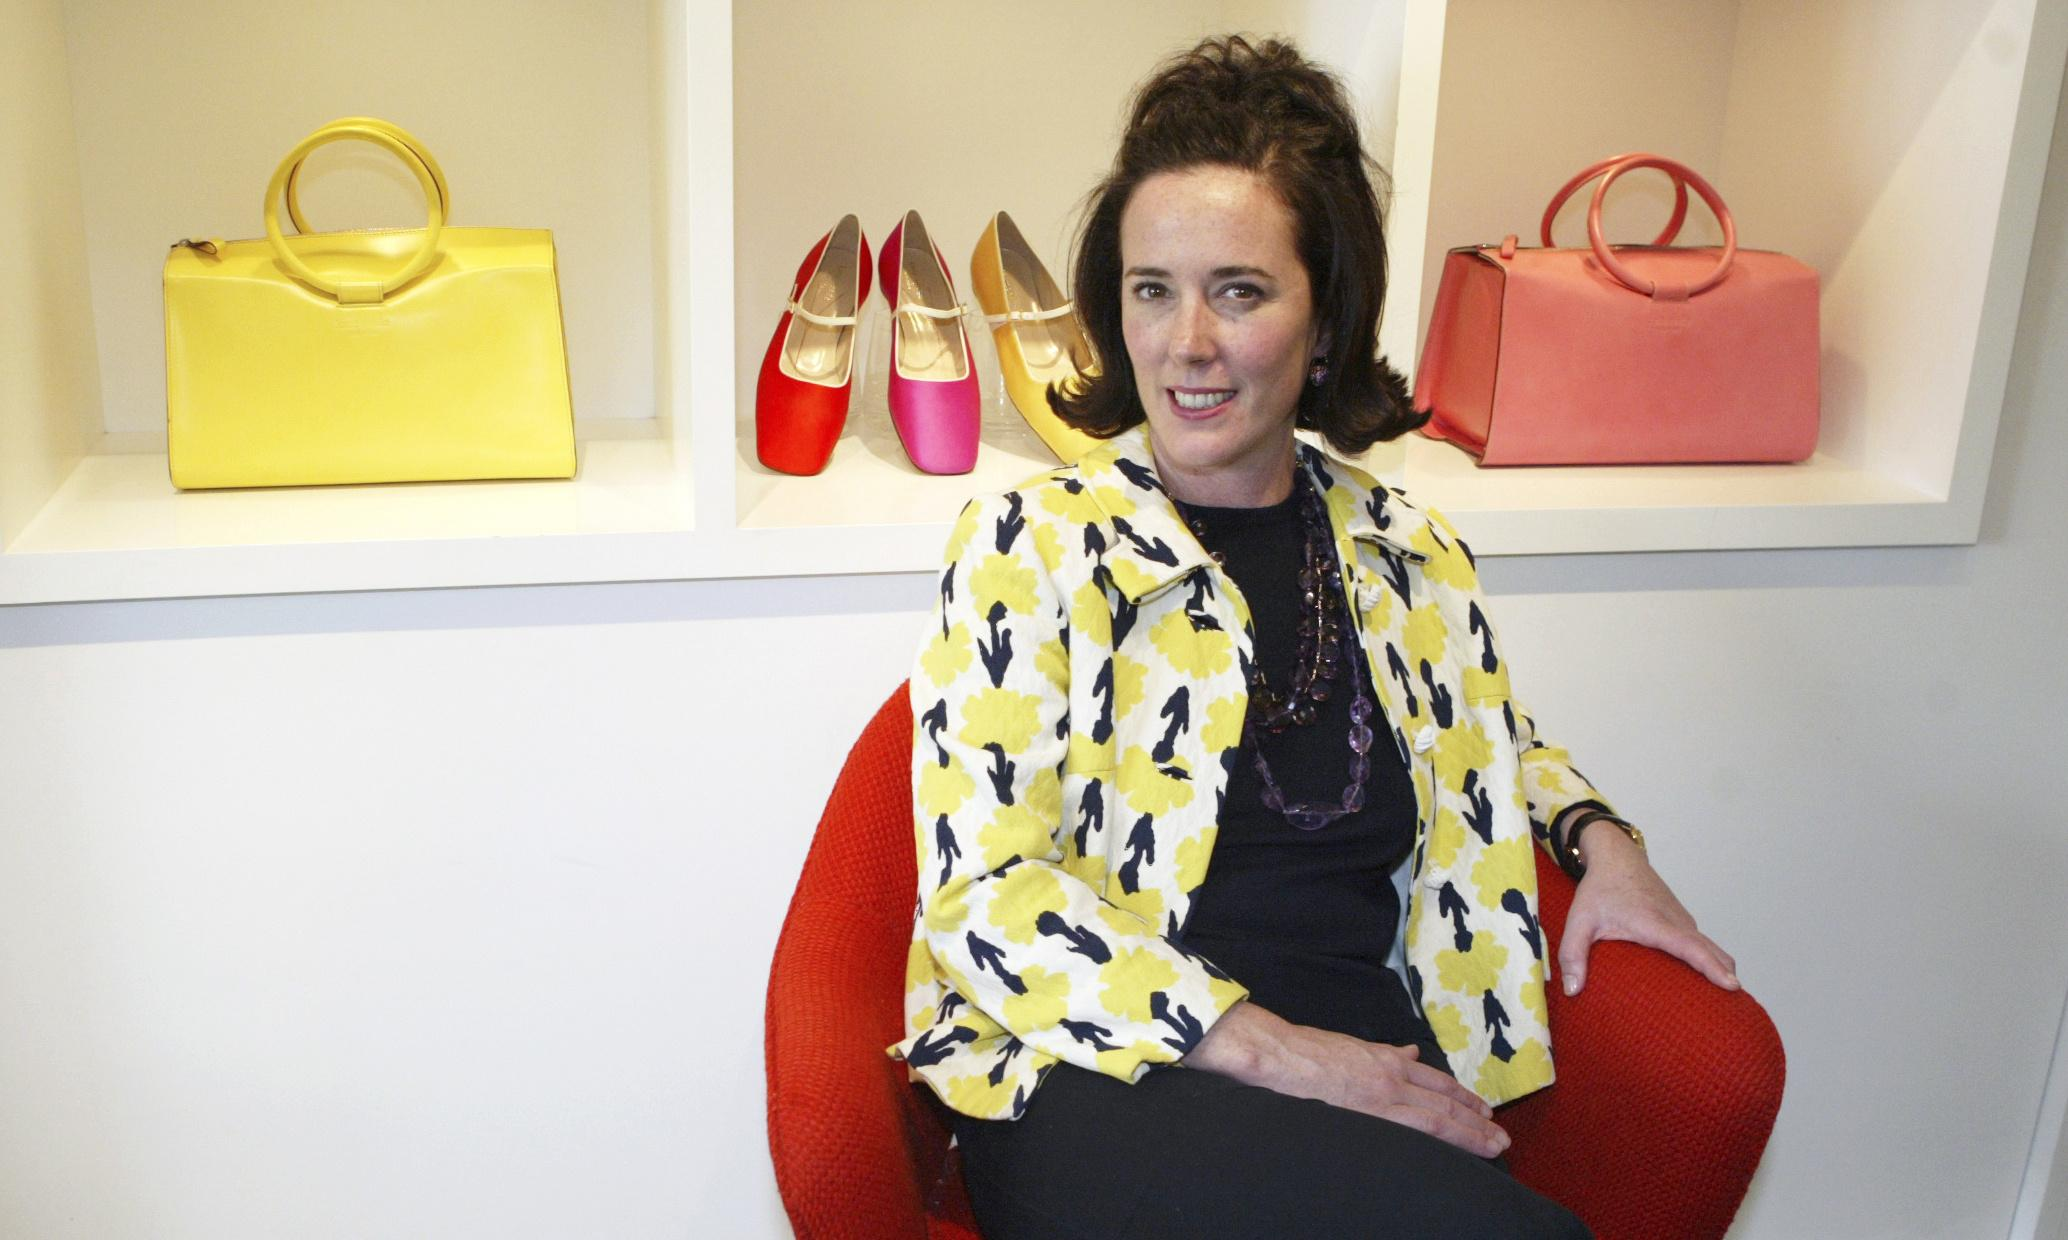 Kate Spade's designs conveyed happiness and sunshine. How sad to learn her life was quite different